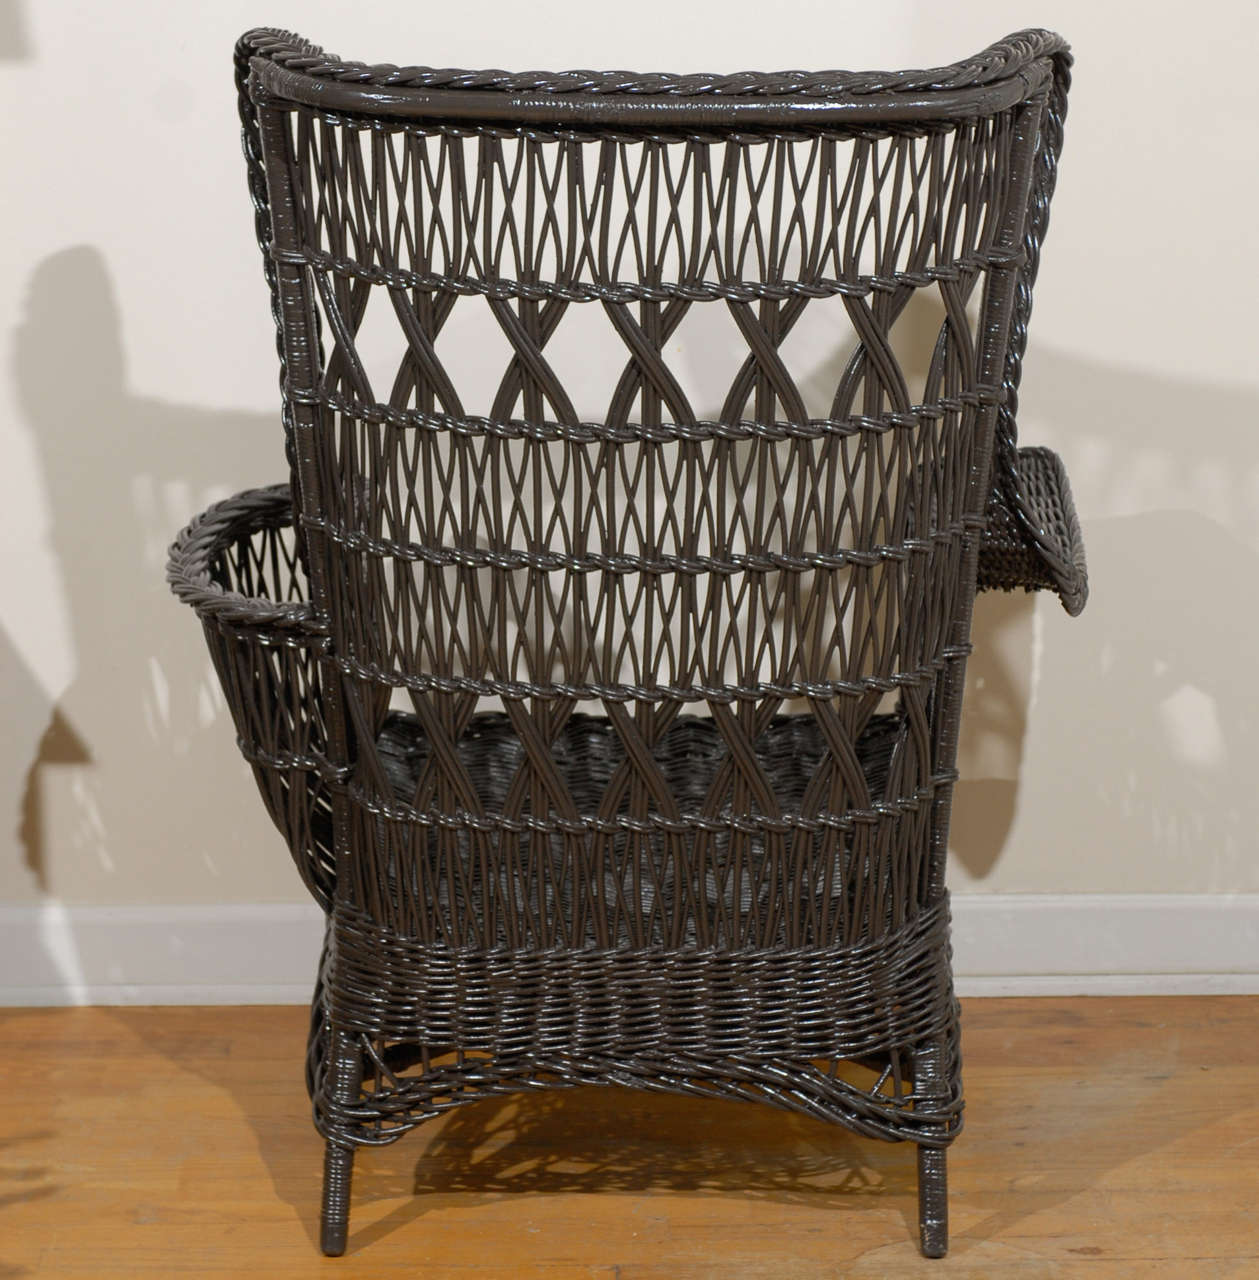 Antique American Wicker Wing Chair with Magazine Pocket 8